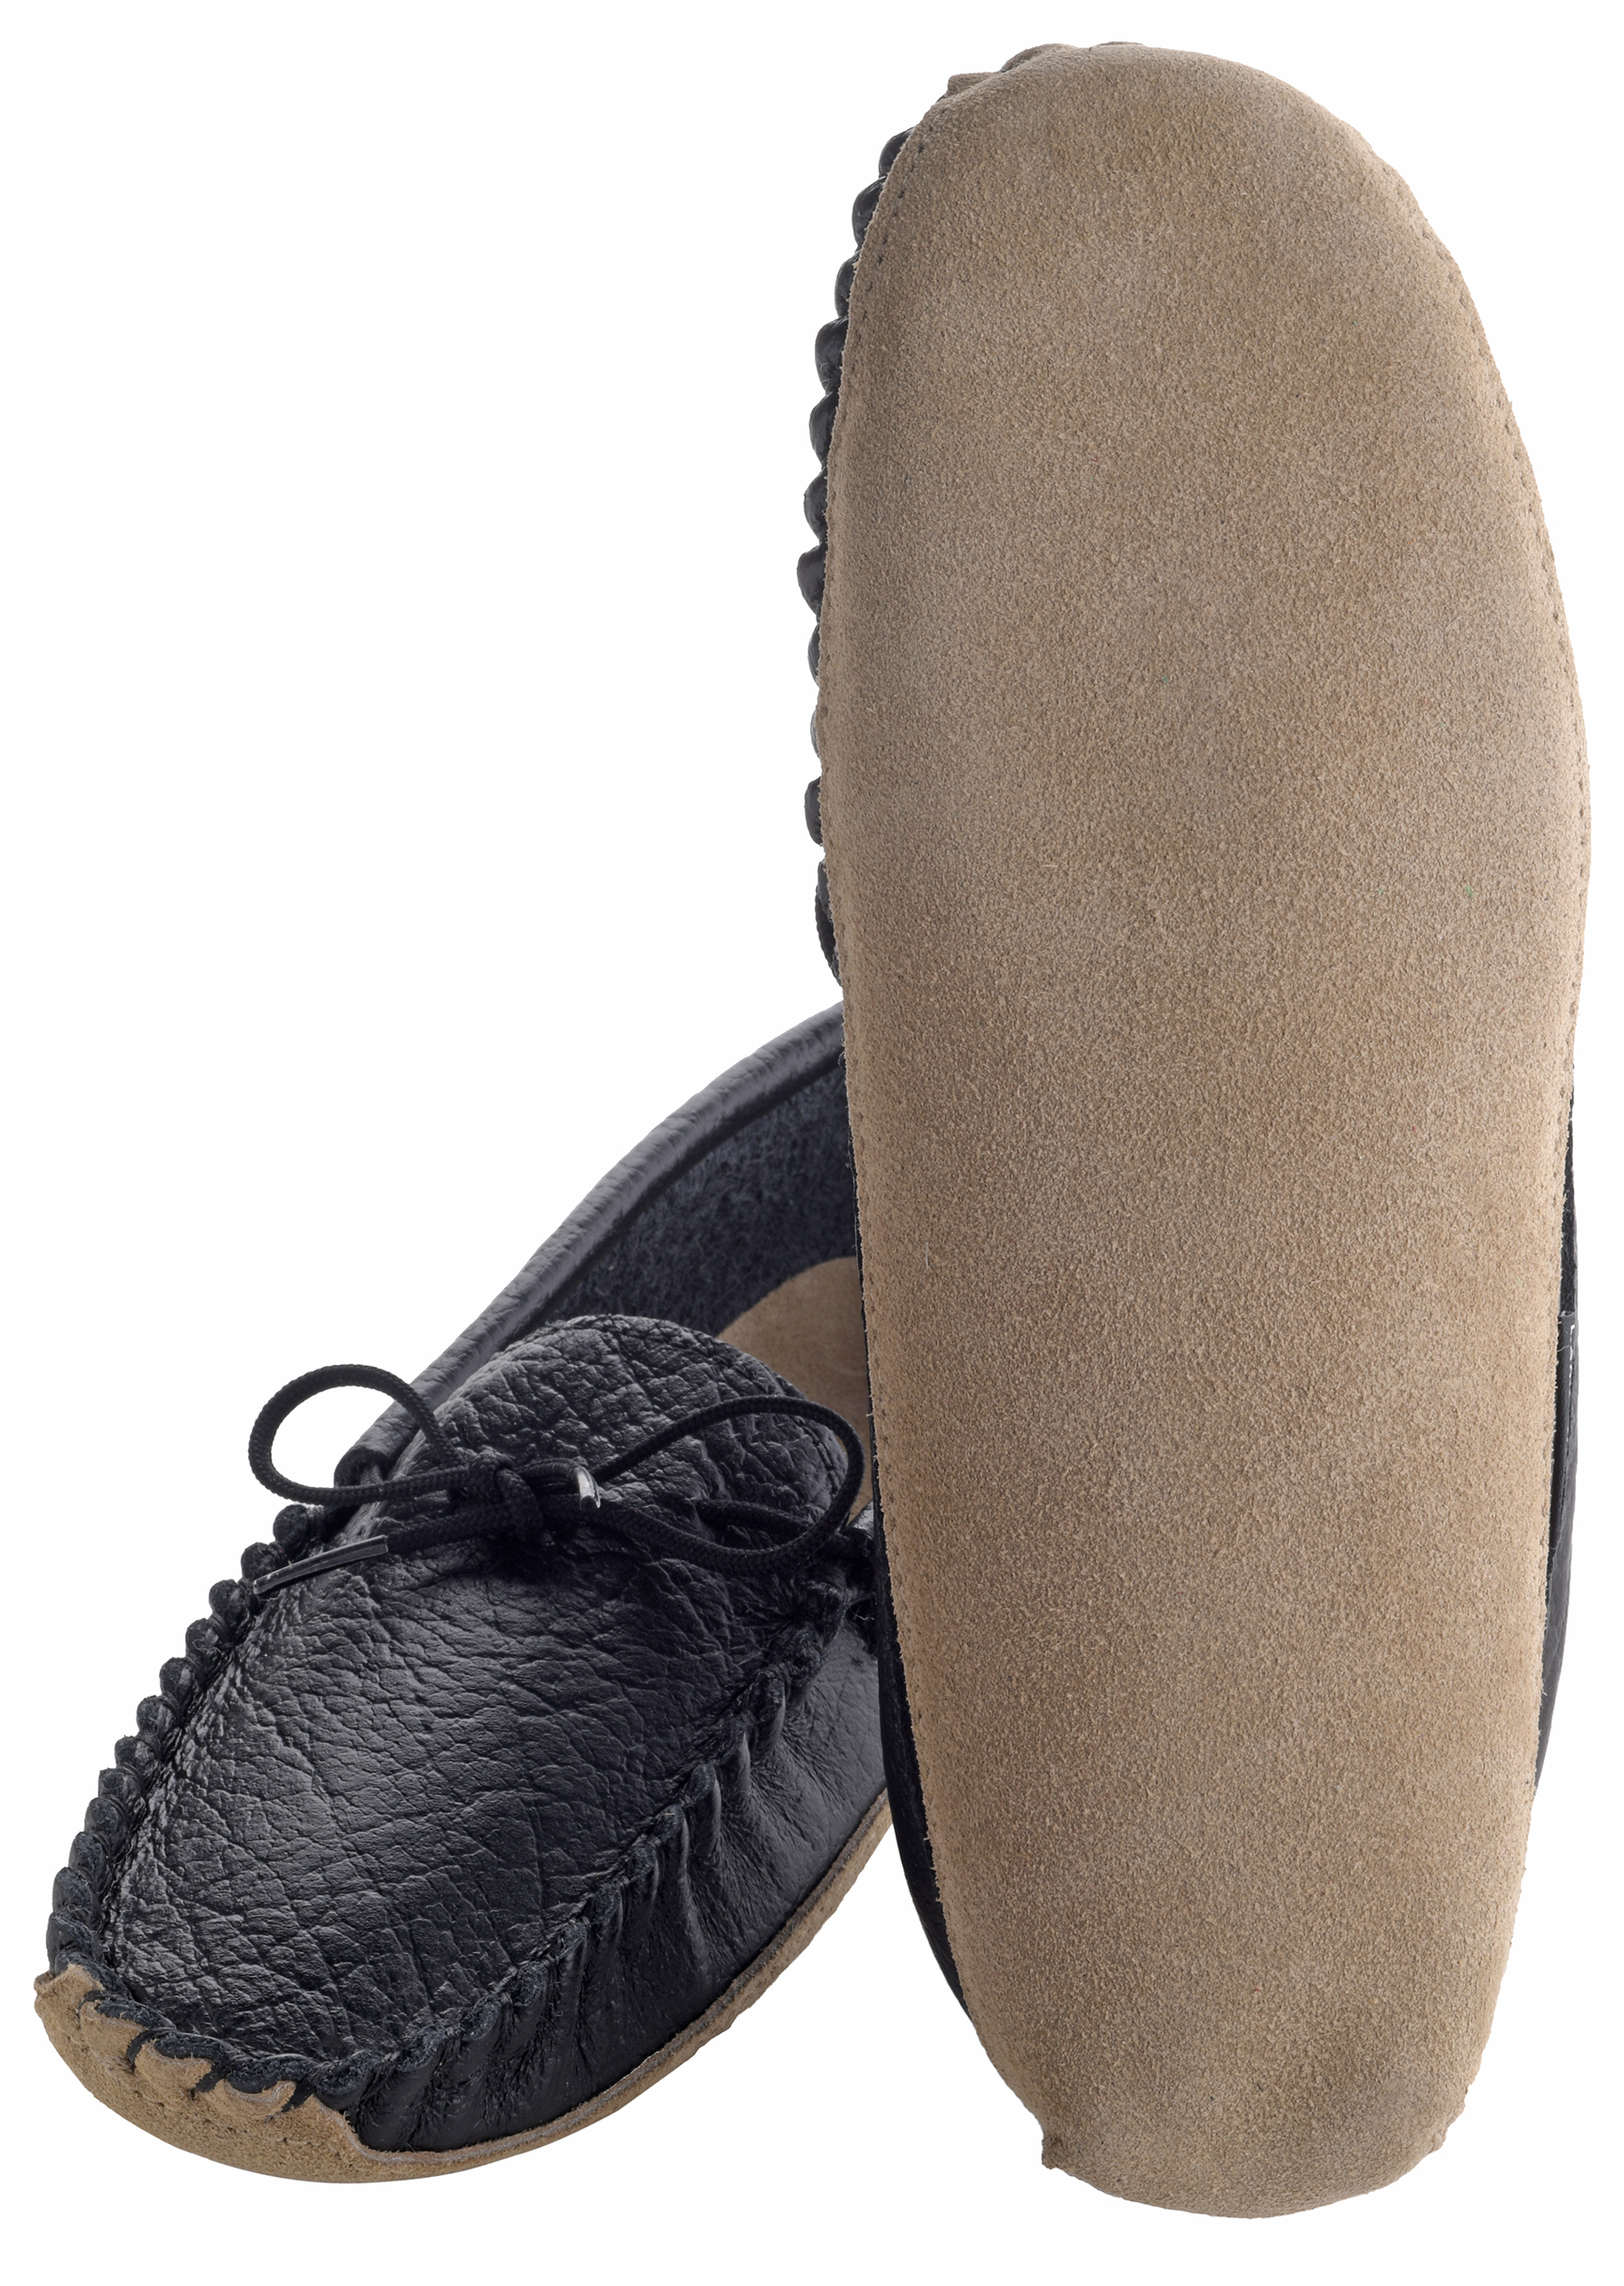 Leather-Earthing-Grounding-Moccasin-Slippers-Made-in-the-UK-Mens-amp-Ladies thumbnail 16